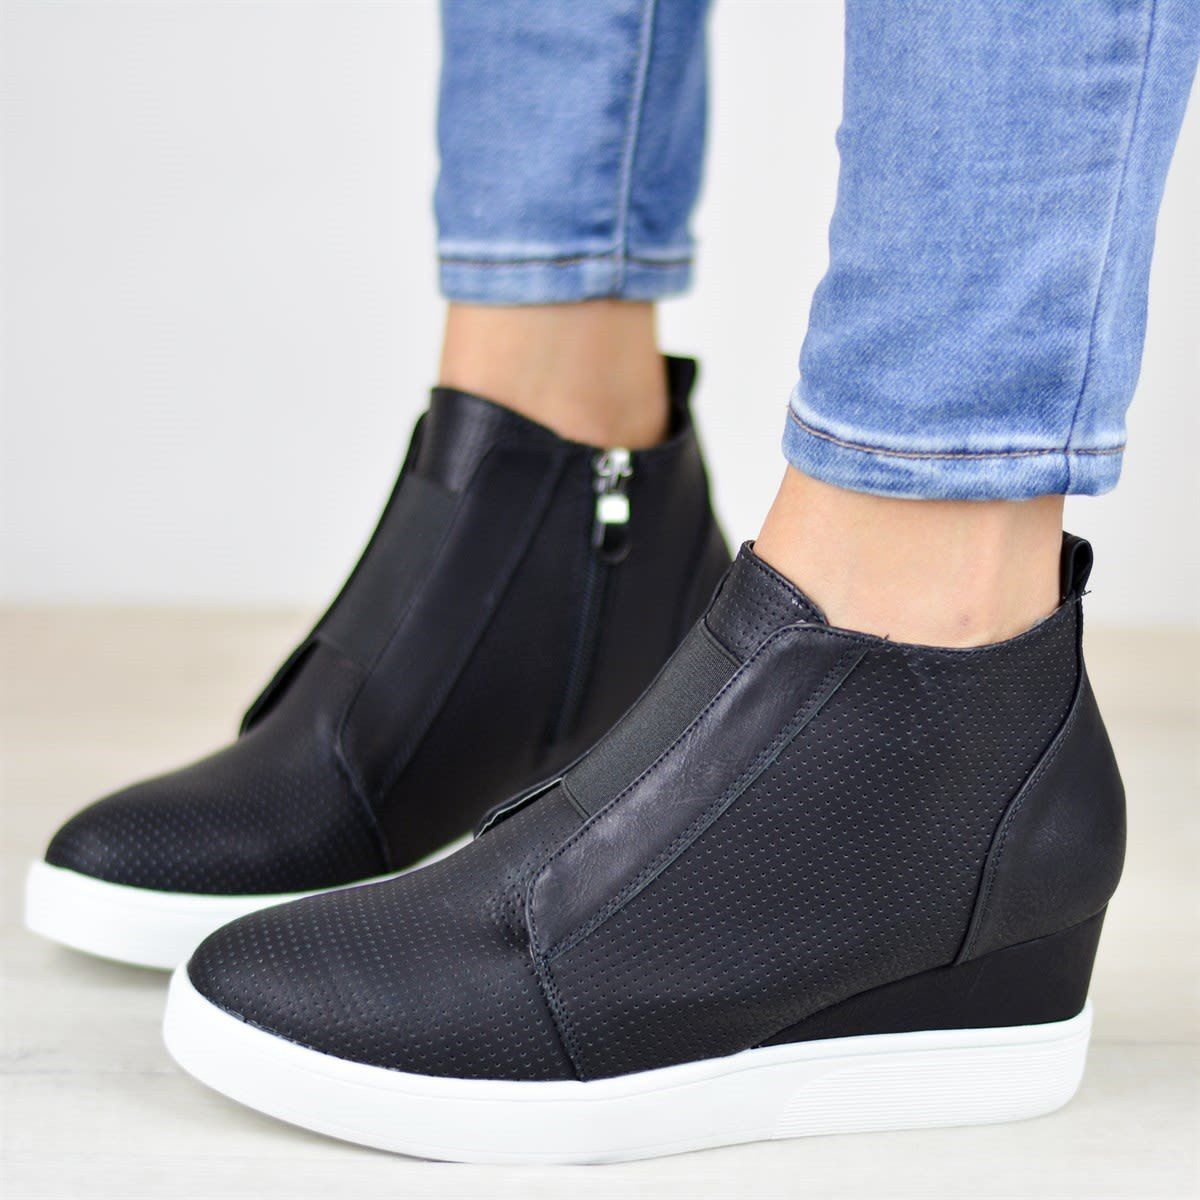 Womens Platform Wedge Sneakers Fashion Closed Toe Perforated High Top Side Zipper Ankle Booties by Nevera